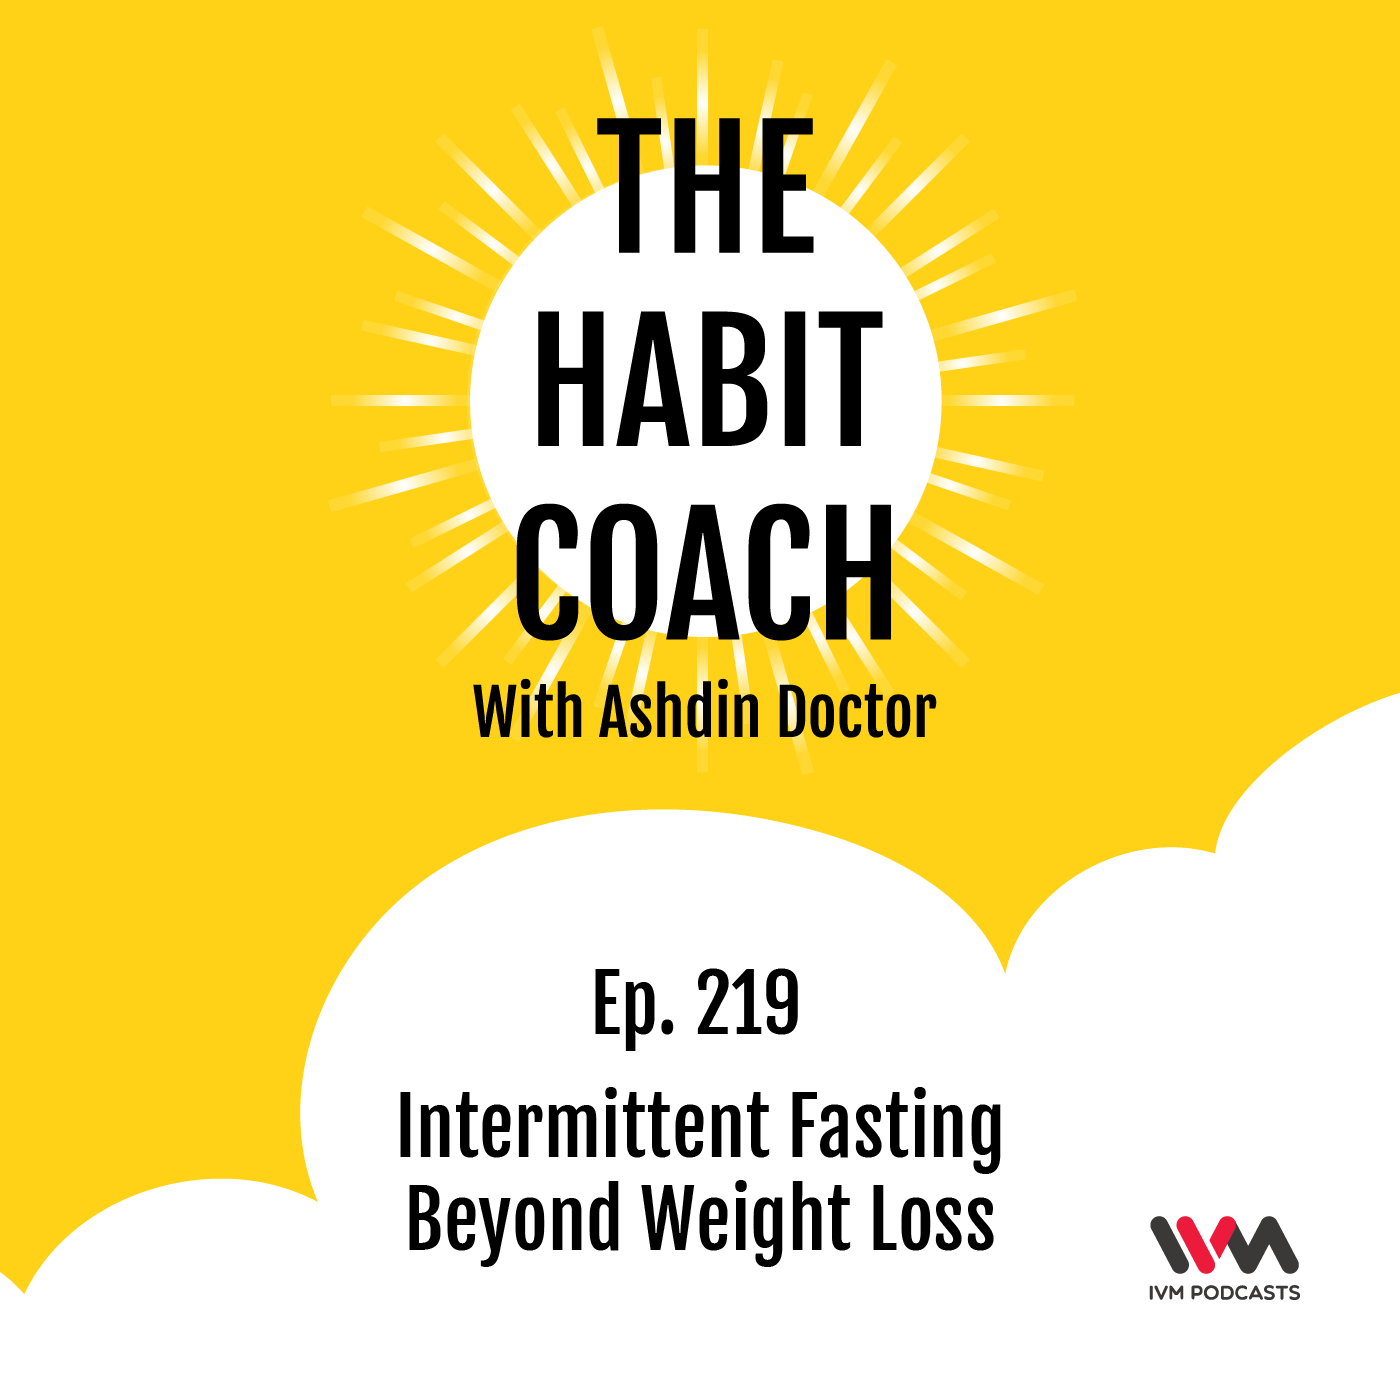 Ep. 219: Intermittent Fasting Beyond Weight Loss